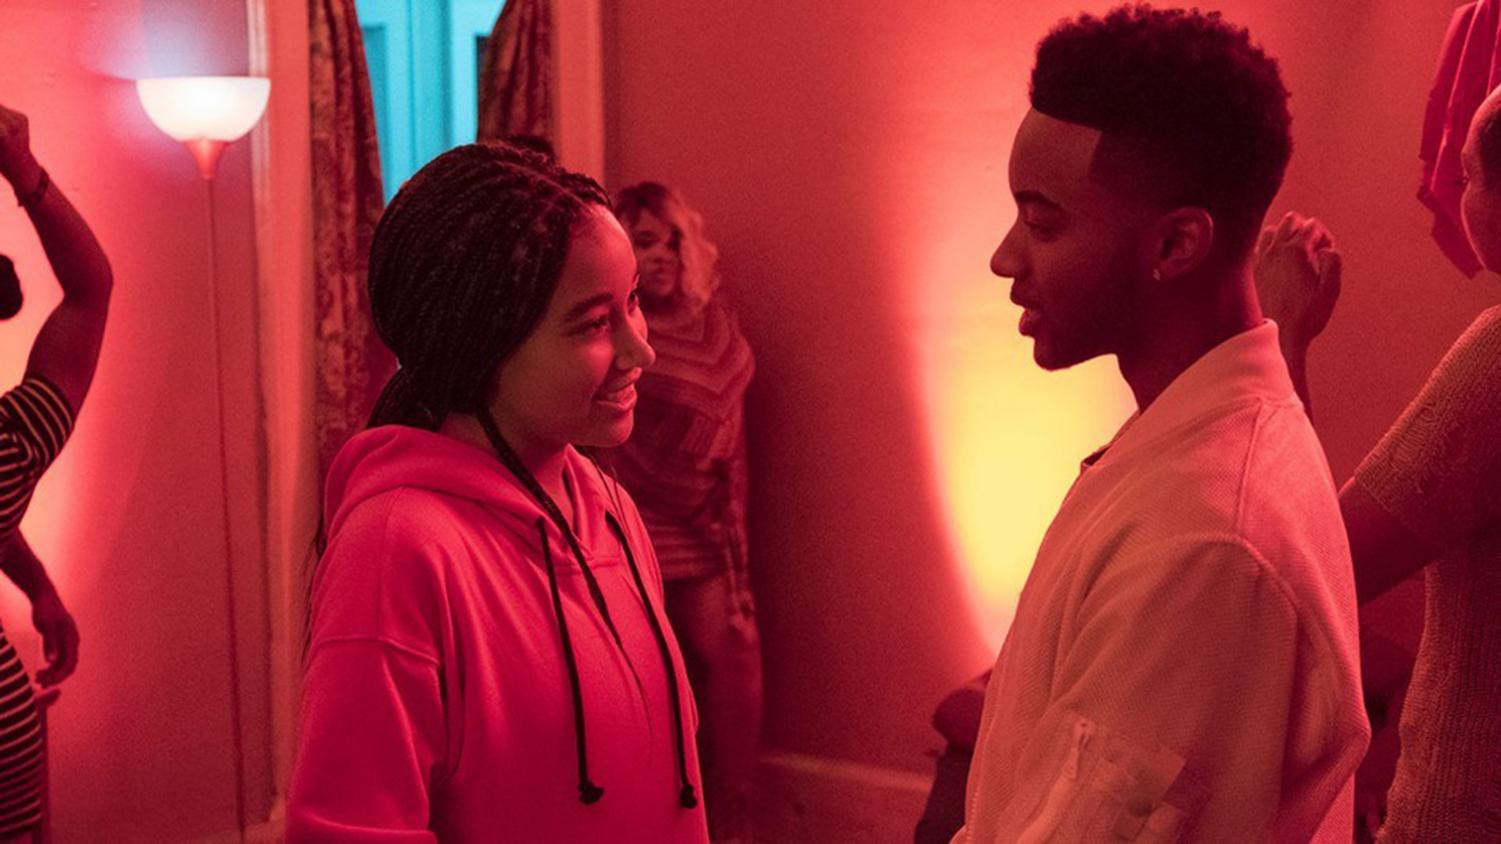 Starr (Amandla Stenberg) and Khalil (Algee Smith) reconnect at a party in their neighborhood.